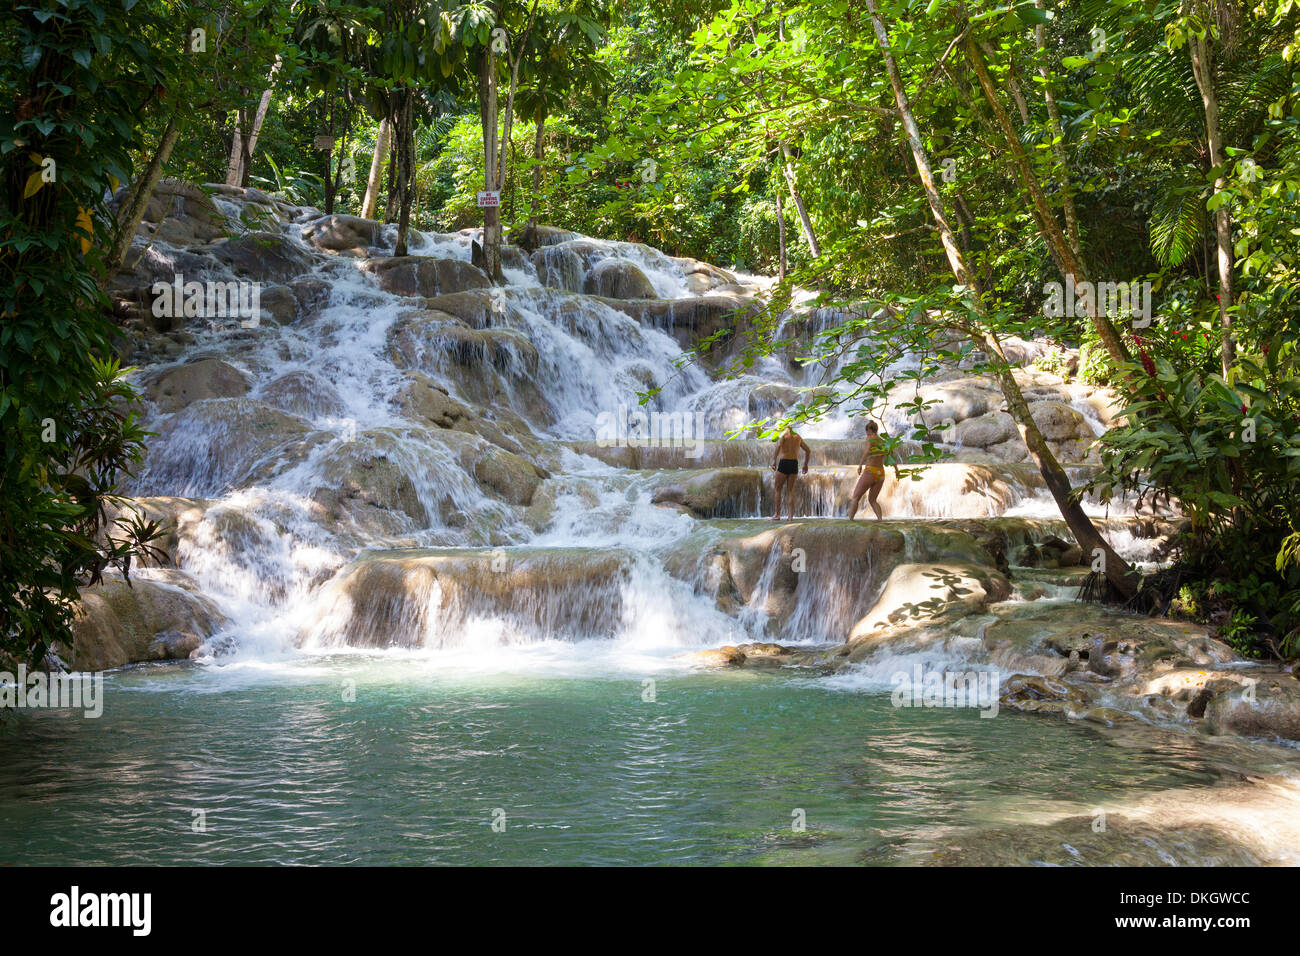 Dunns River Falls, Ocho Rios, Jamaica, West Indies, Caribbean, Central America - Stock Image